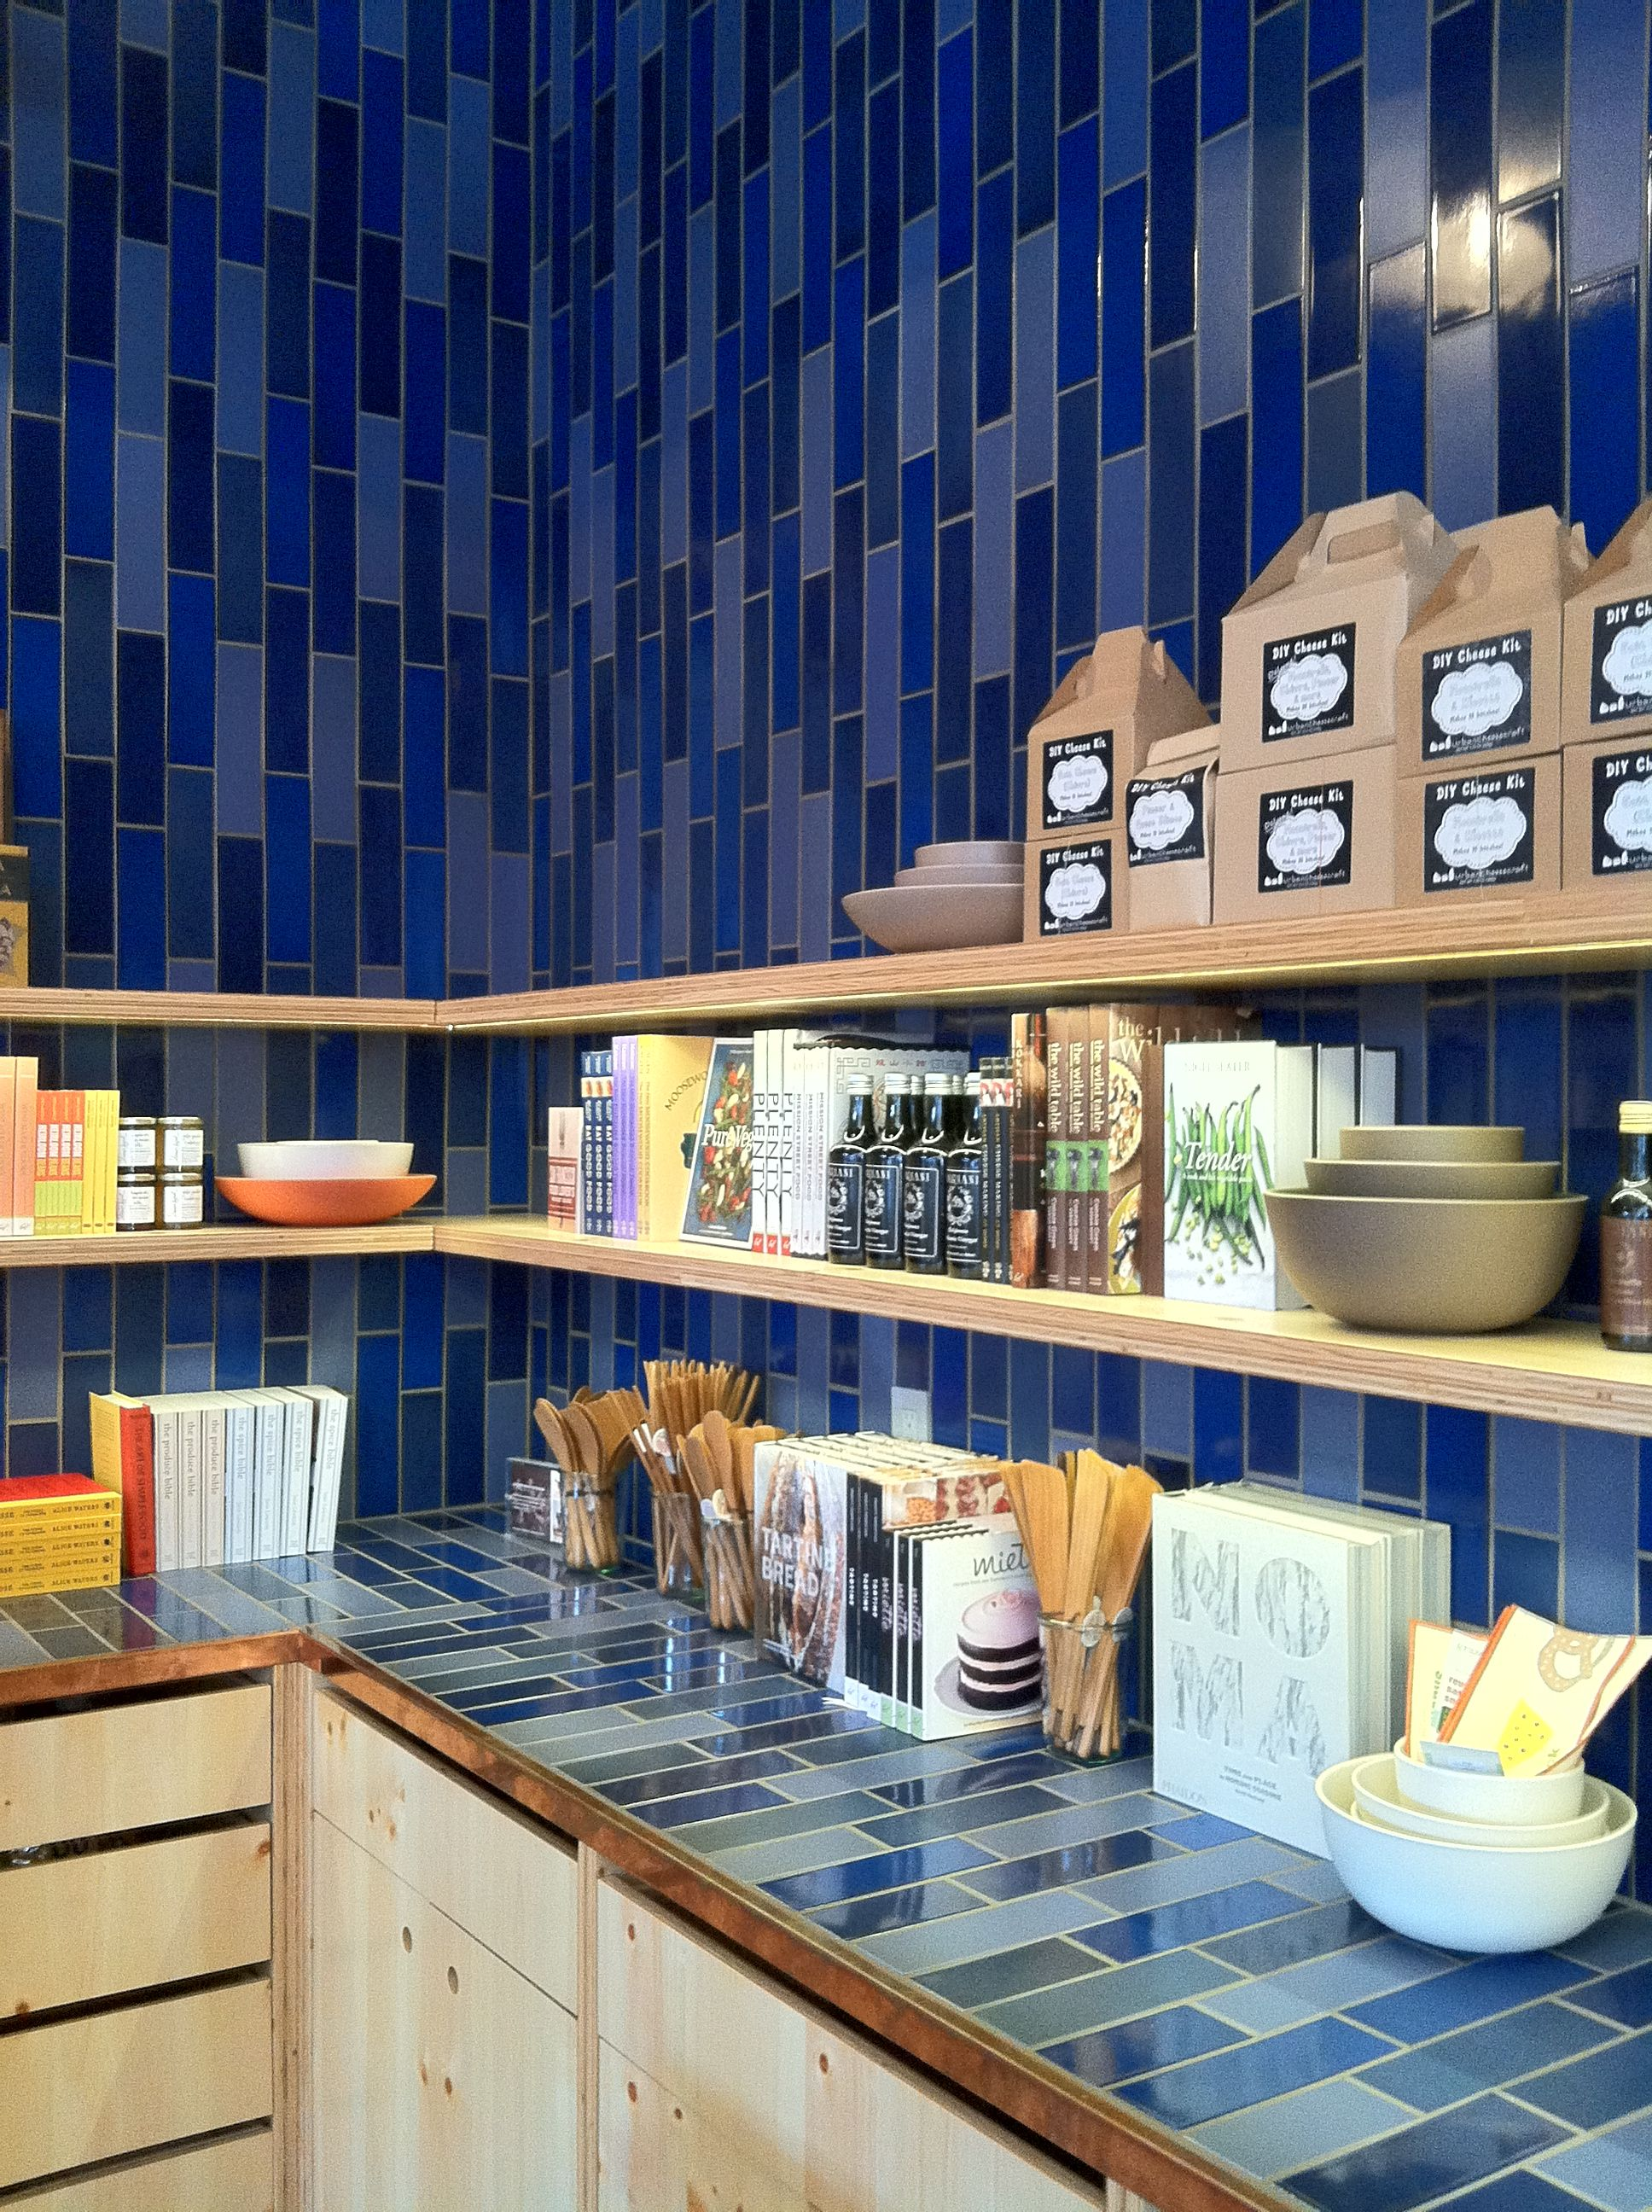 Floating Shelves and Vertical Tile Backsplash at Heath Ceramics ...